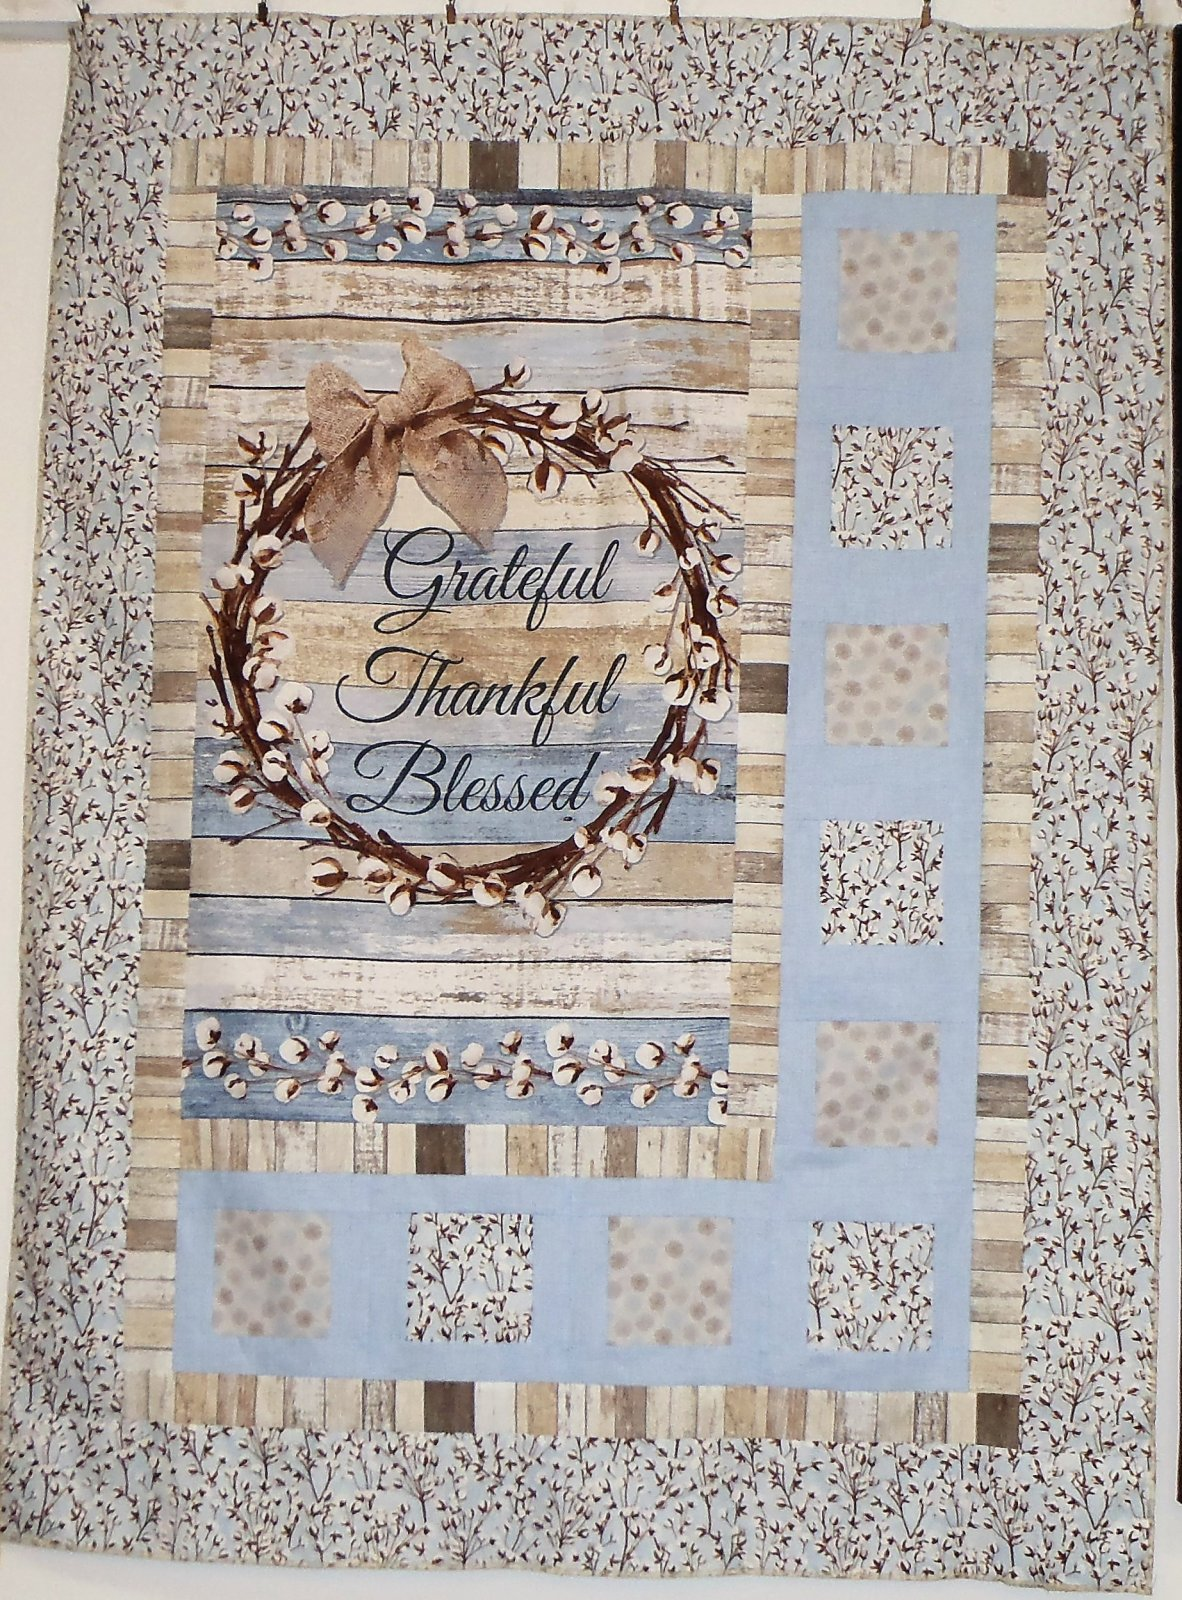 Cotton Blossoms Sidelights Quilt Top